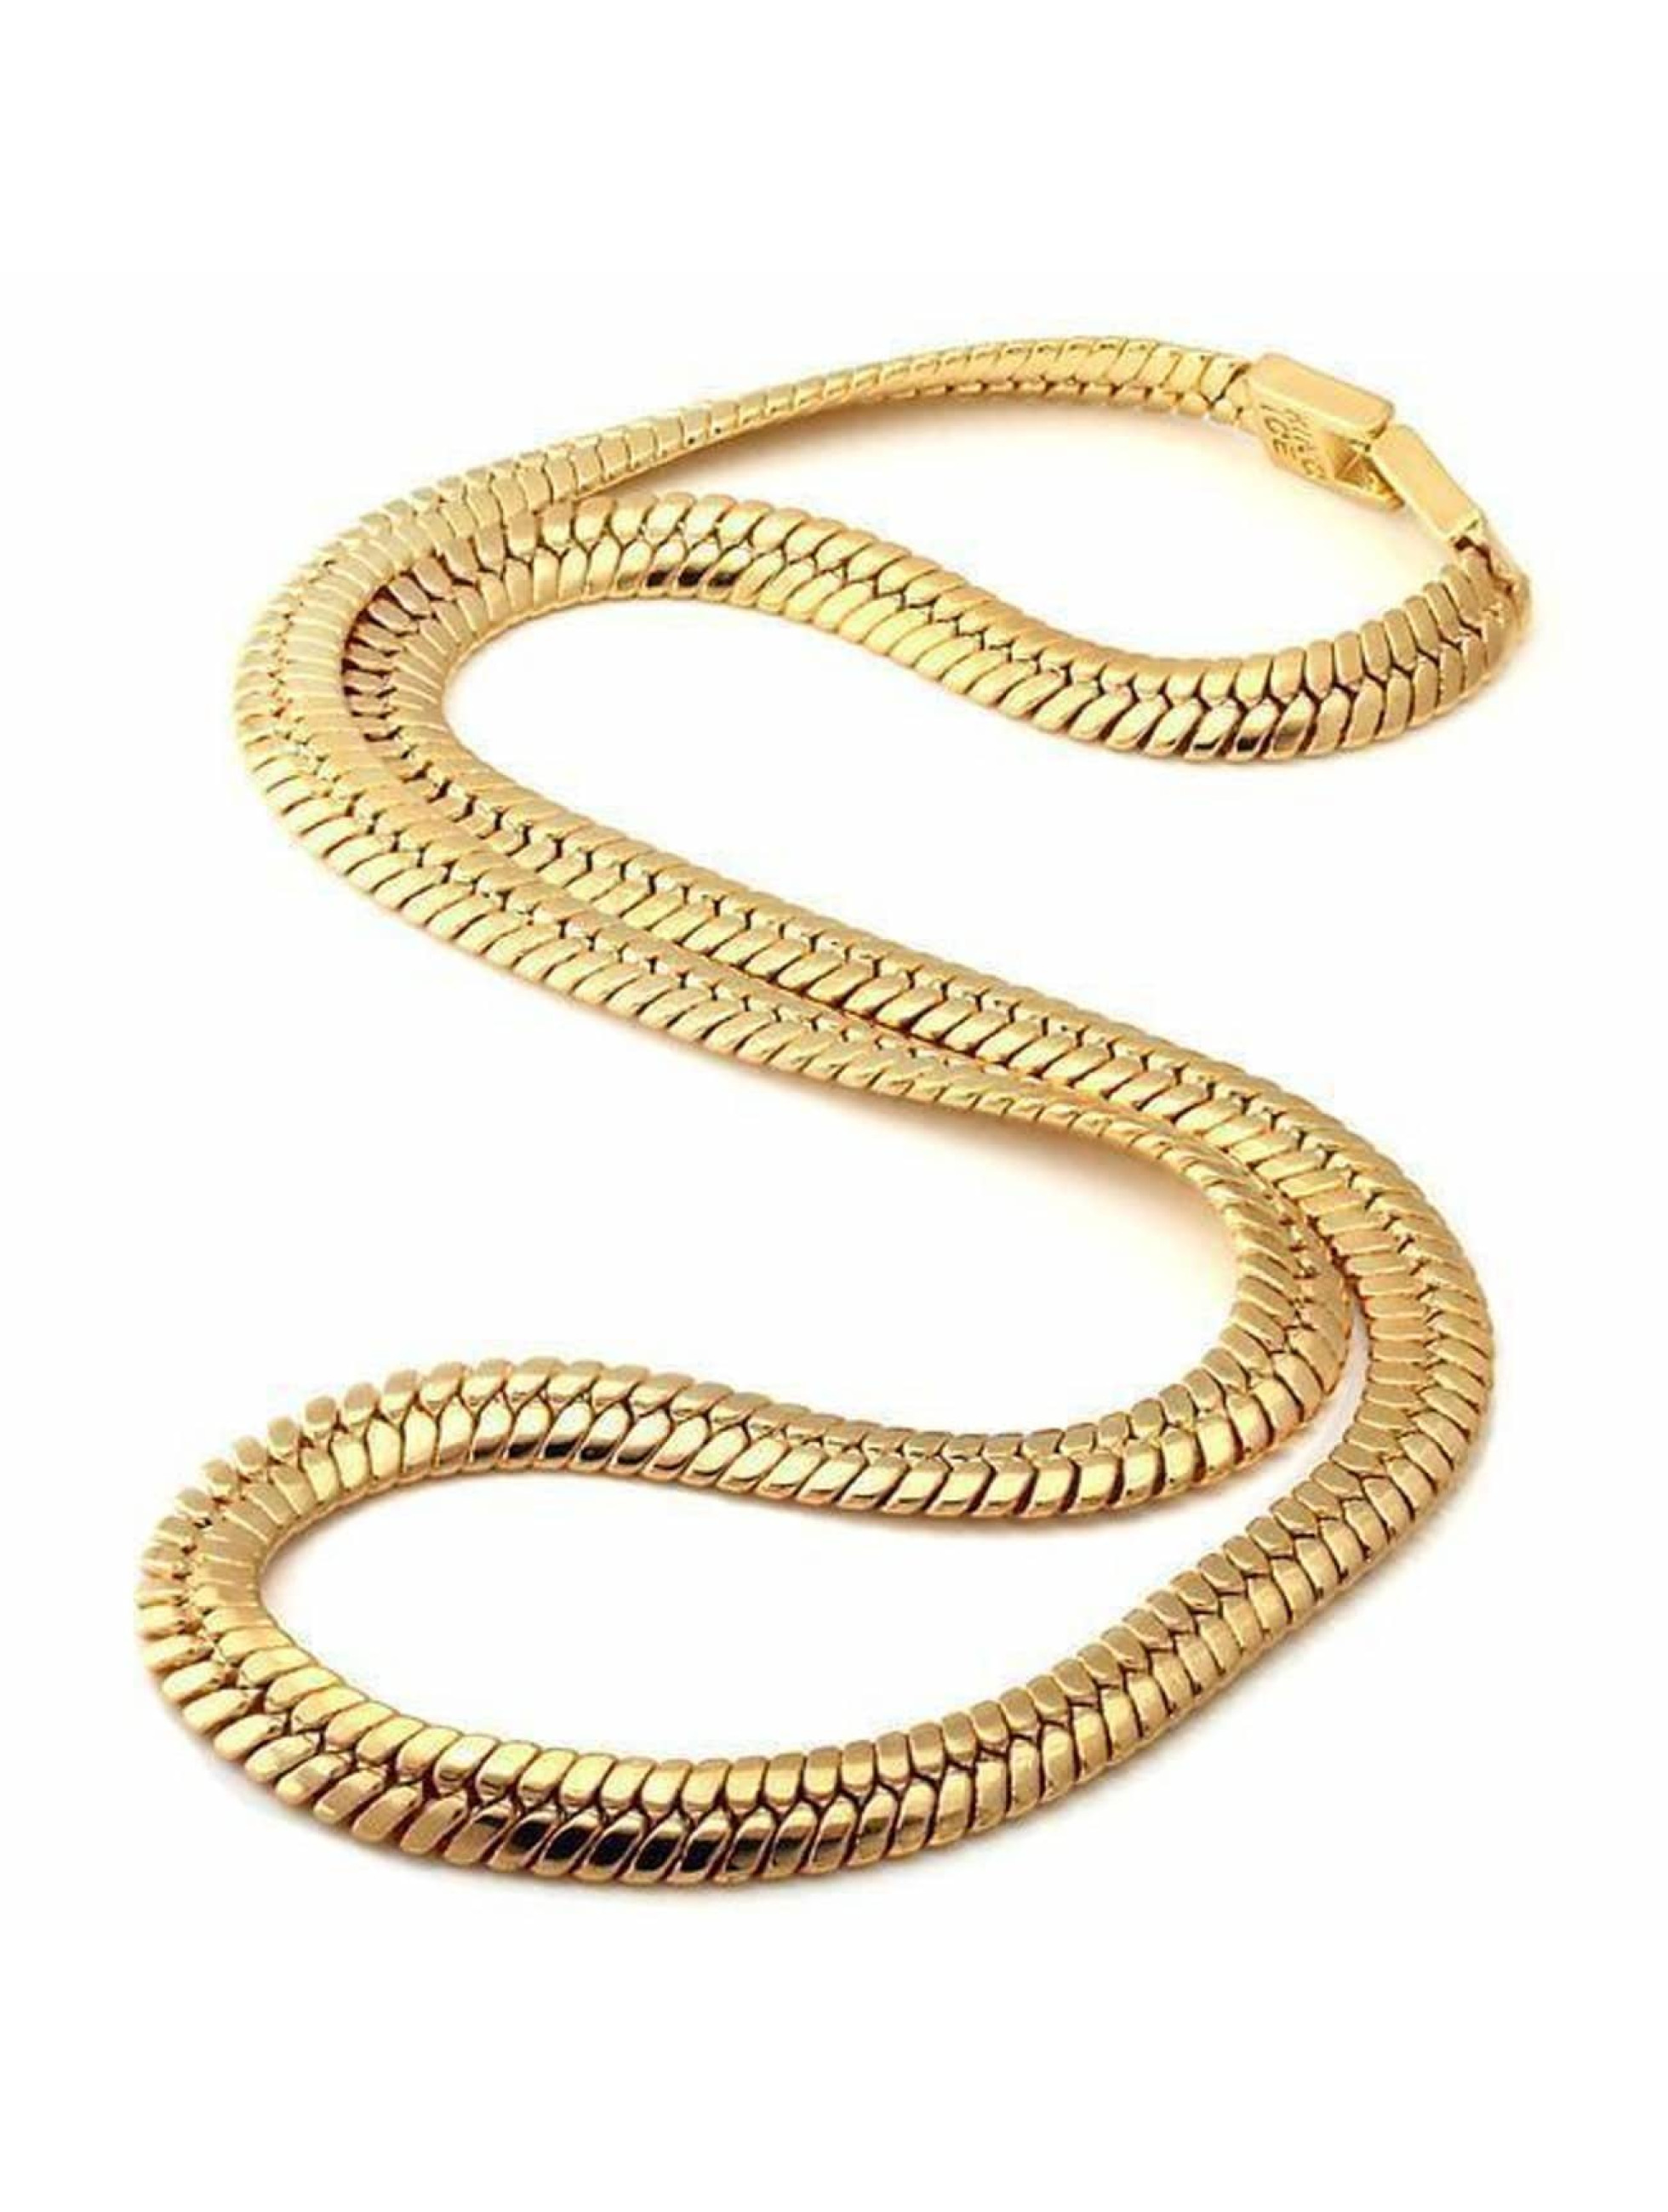 KING ICE ketting Gold_Plated 10mm Thick Herringbone goud